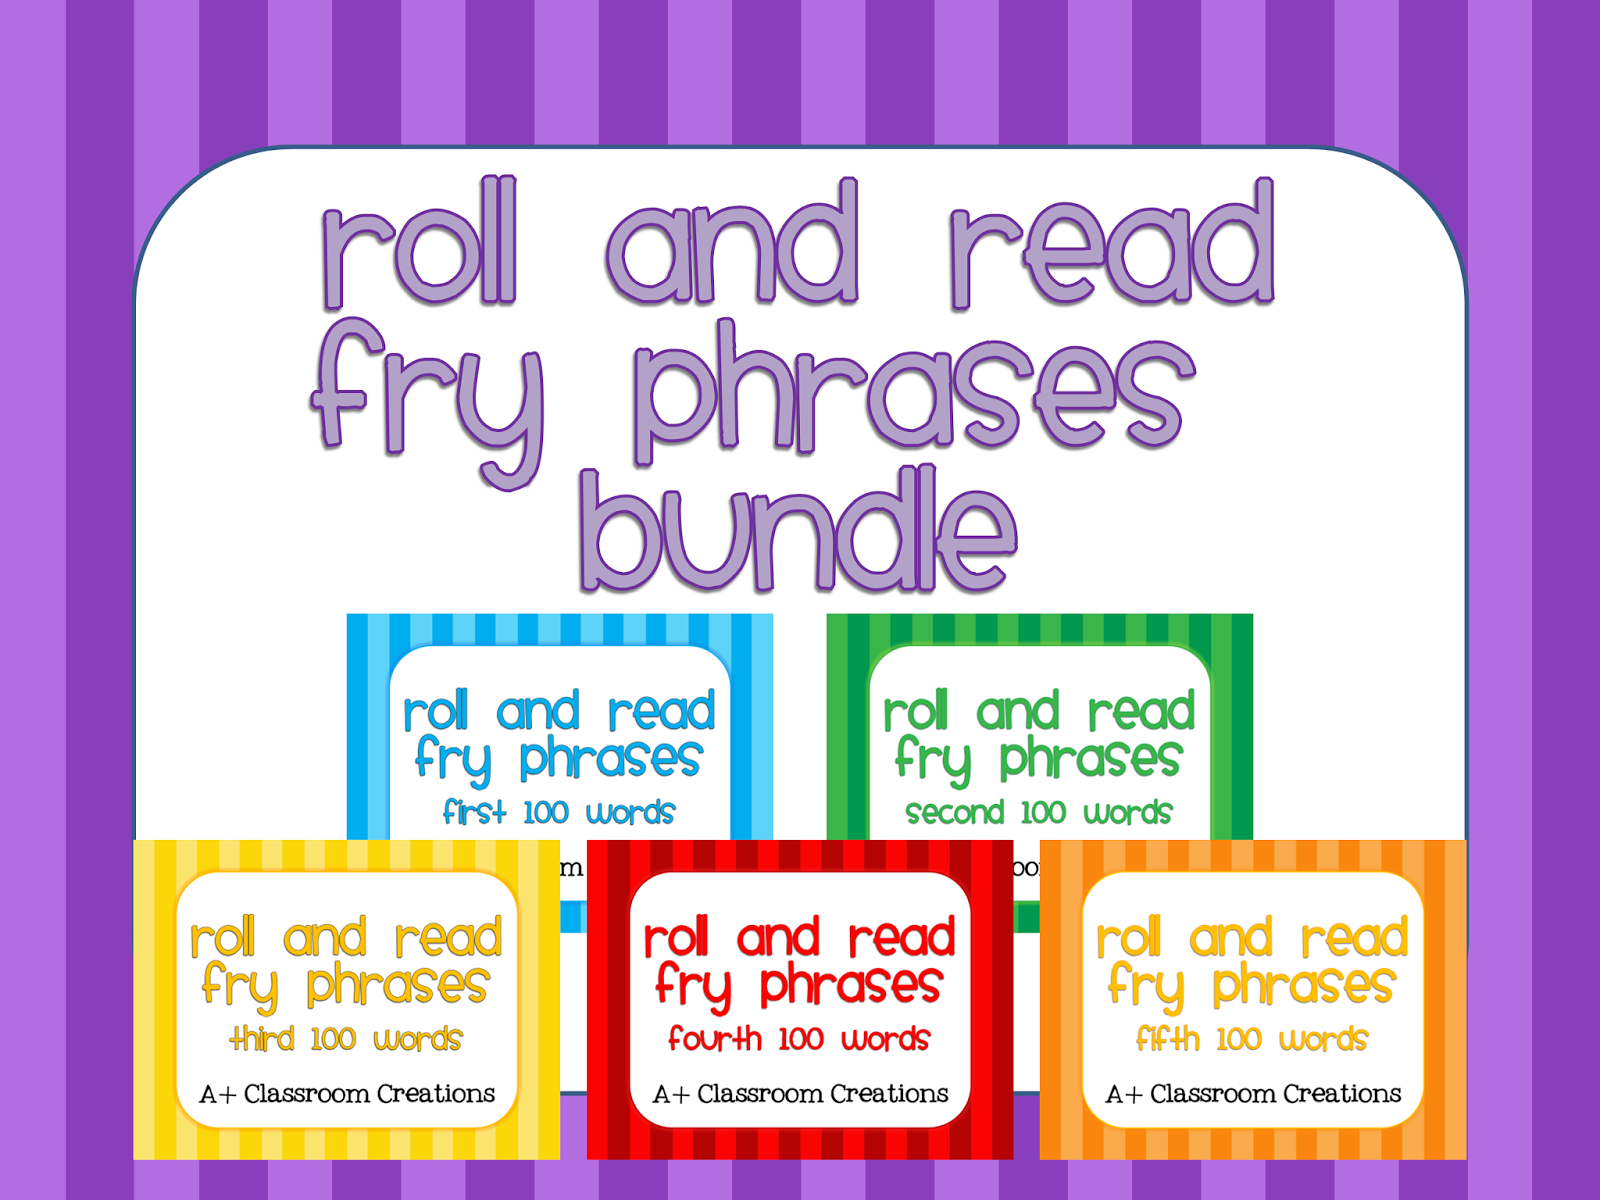 https://www.teacherspayteachers.com/Store/A-Plus-Classroom-Creations/Category/Roll-and-Read